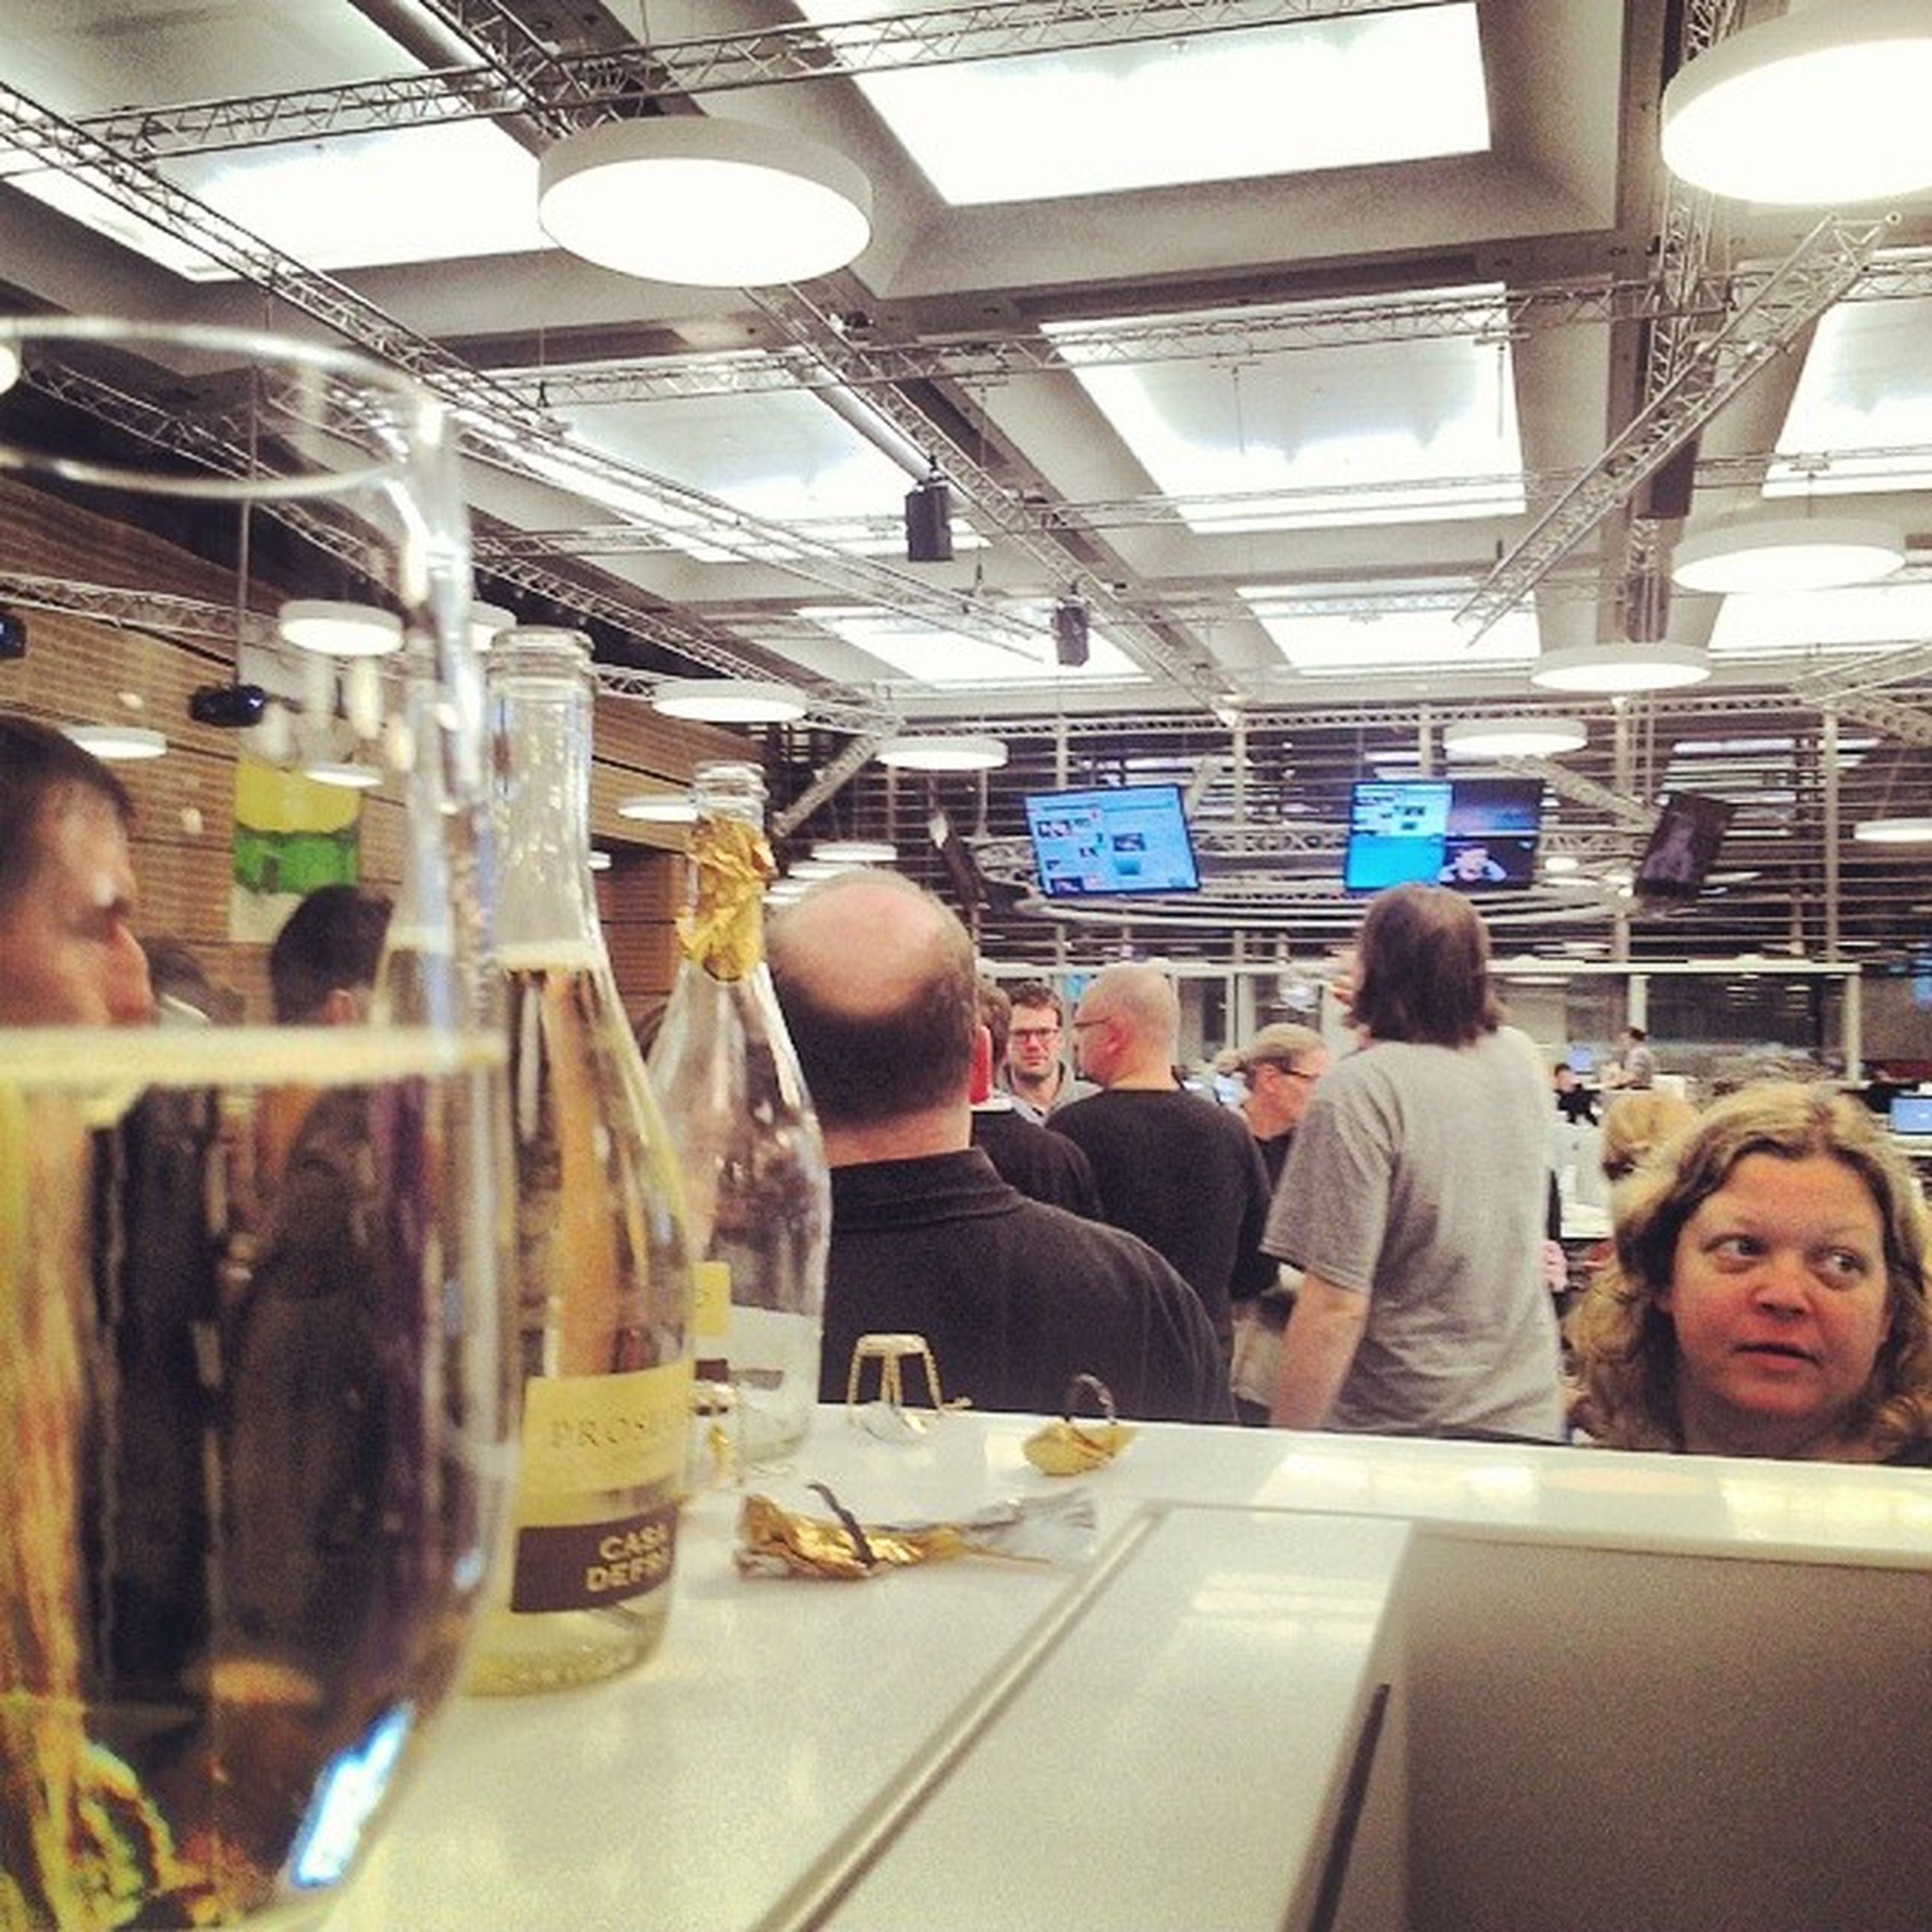 indoors, food and drink, glass - material, lifestyles, transparent, men, window, leisure activity, food, restaurant, sitting, person, table, drink, incidental people, glass, casual clothing